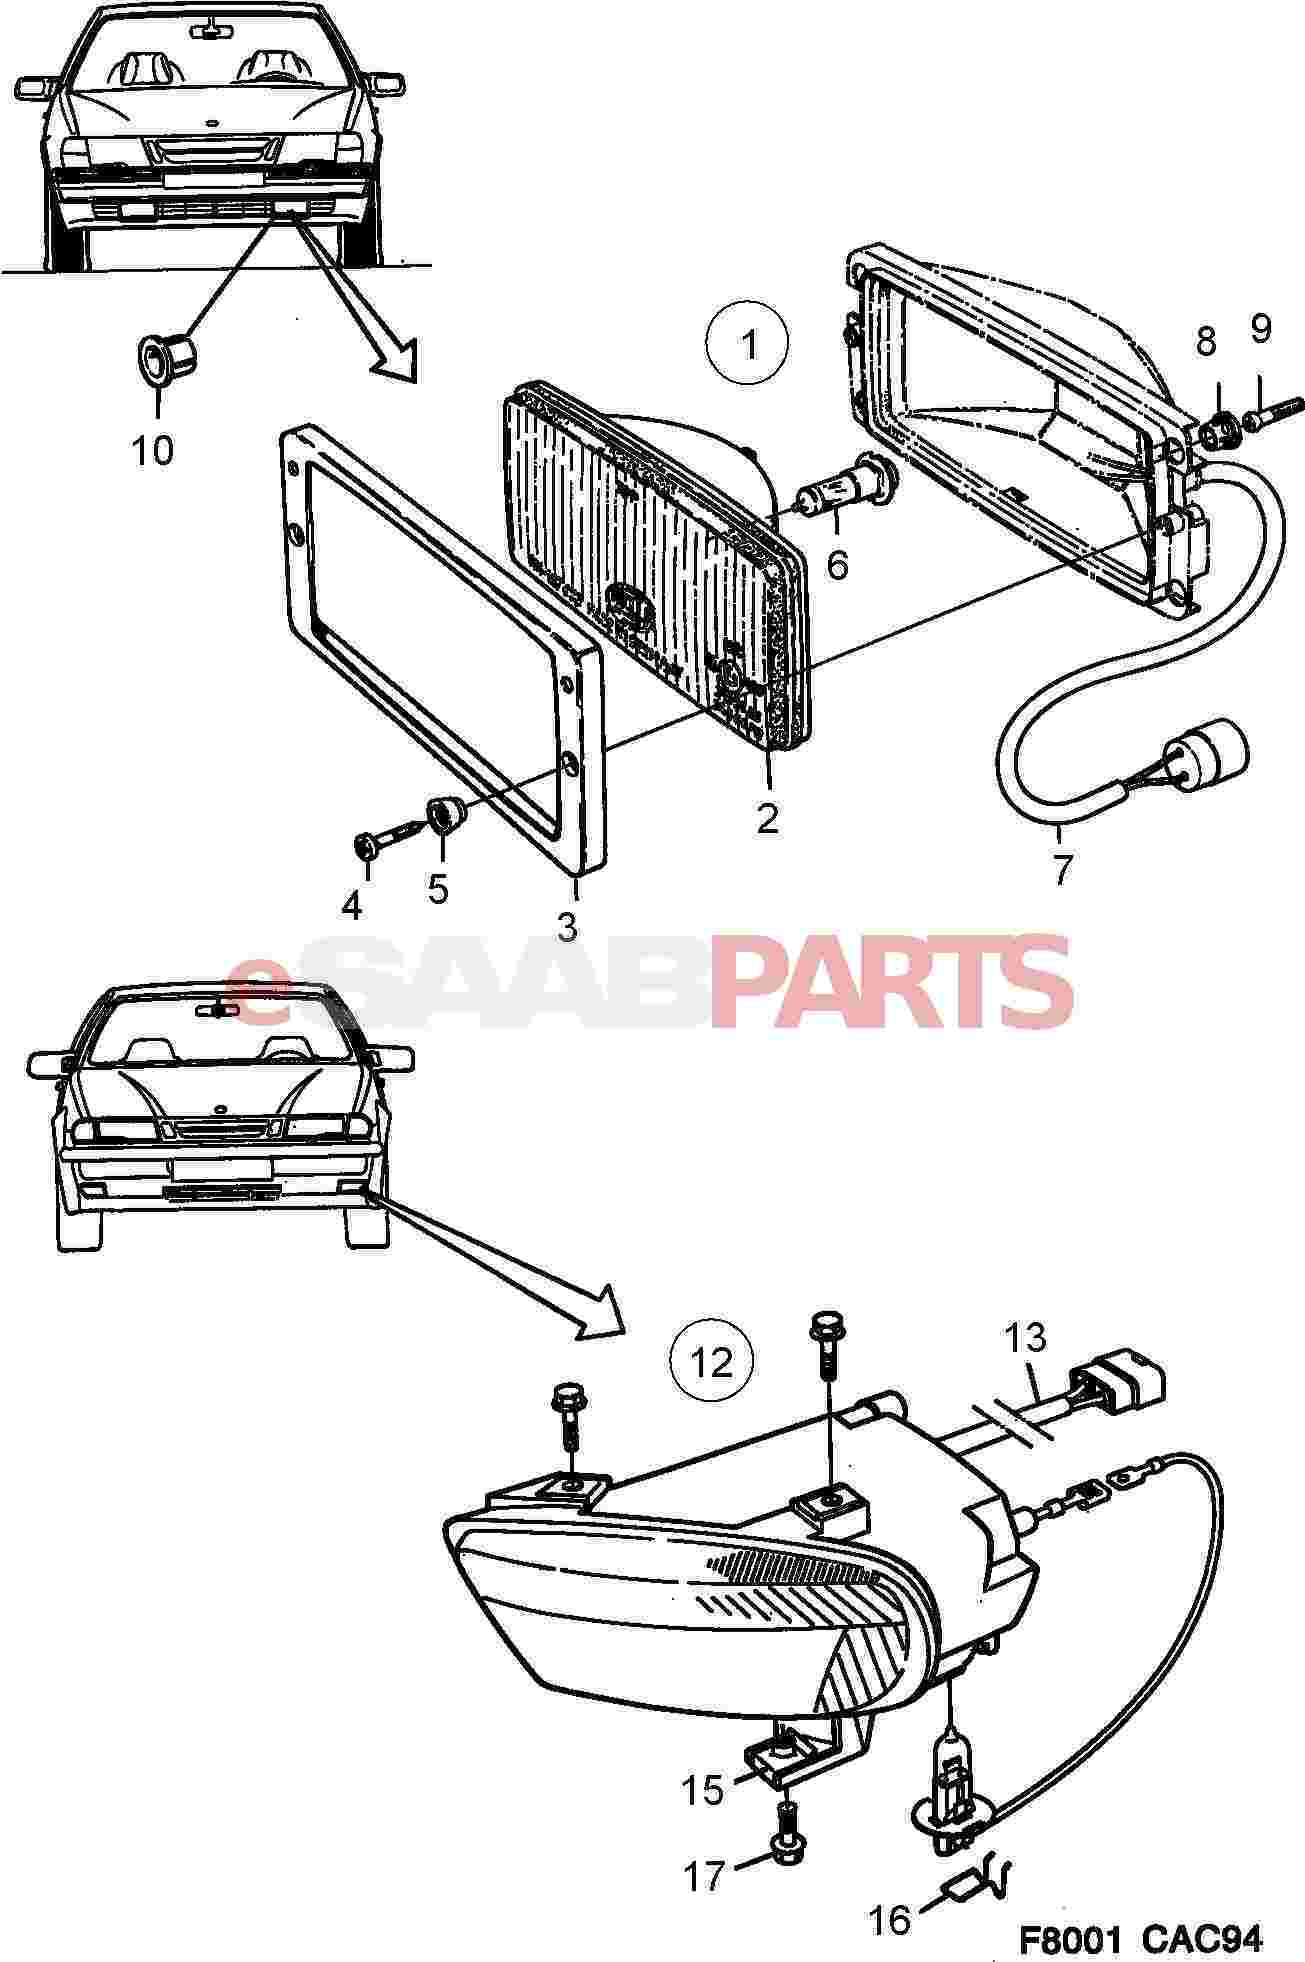 Saab 9000 Parts Diagram. Saab. Auto Parts Catalog And Diagram